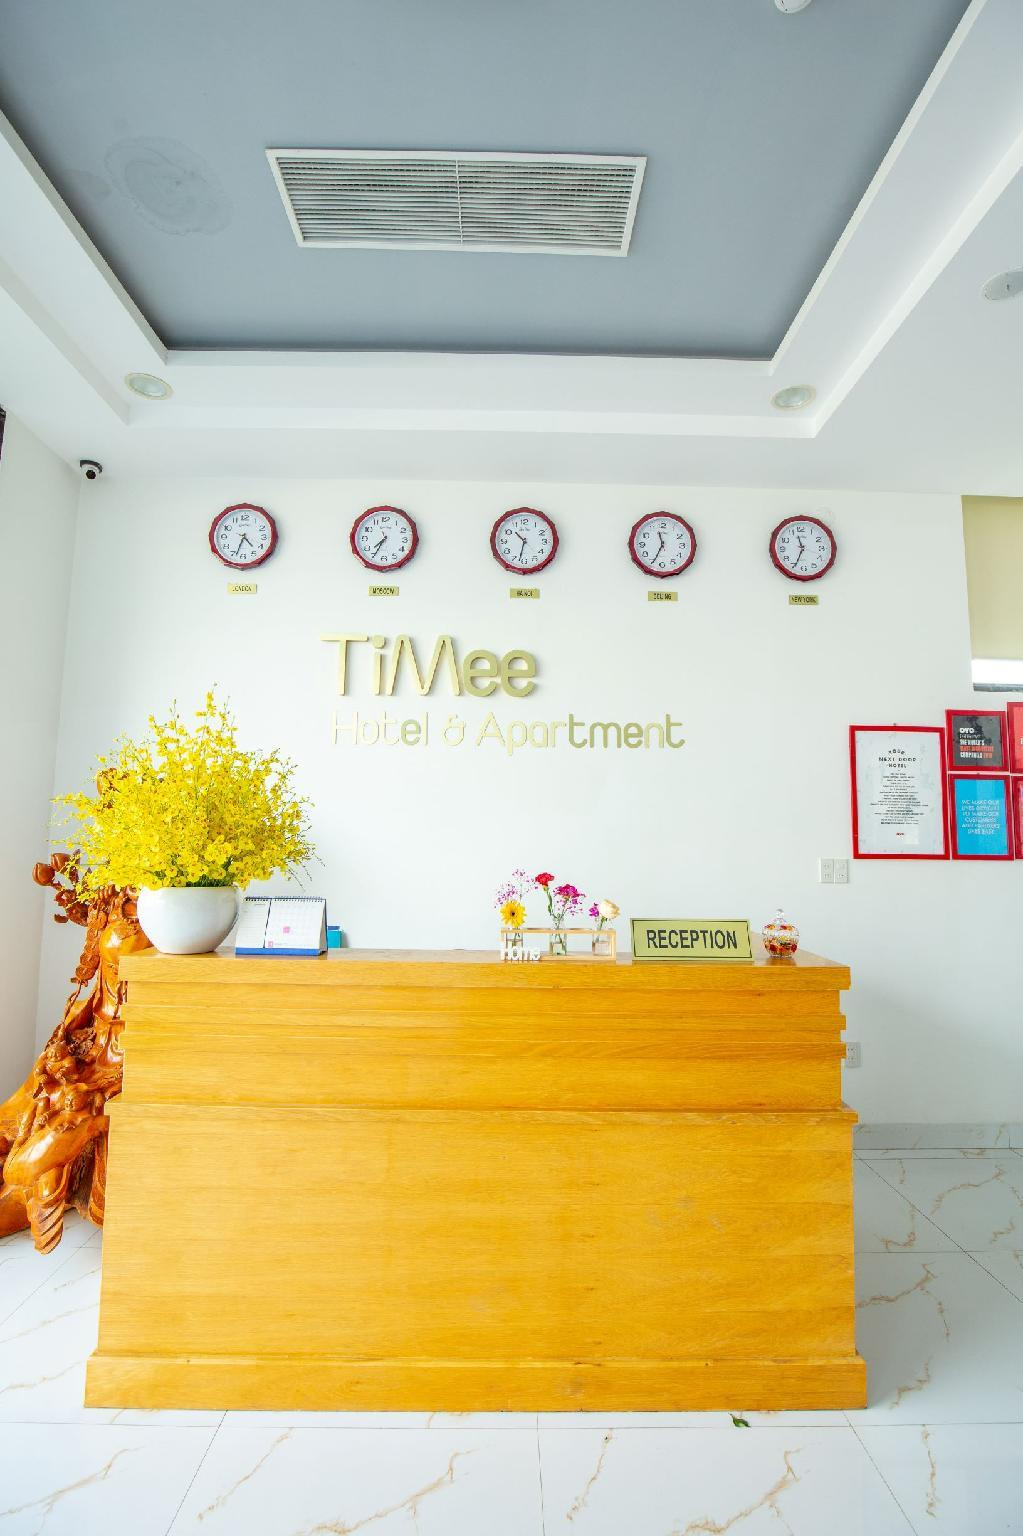 TiMee Hotel And Apartment